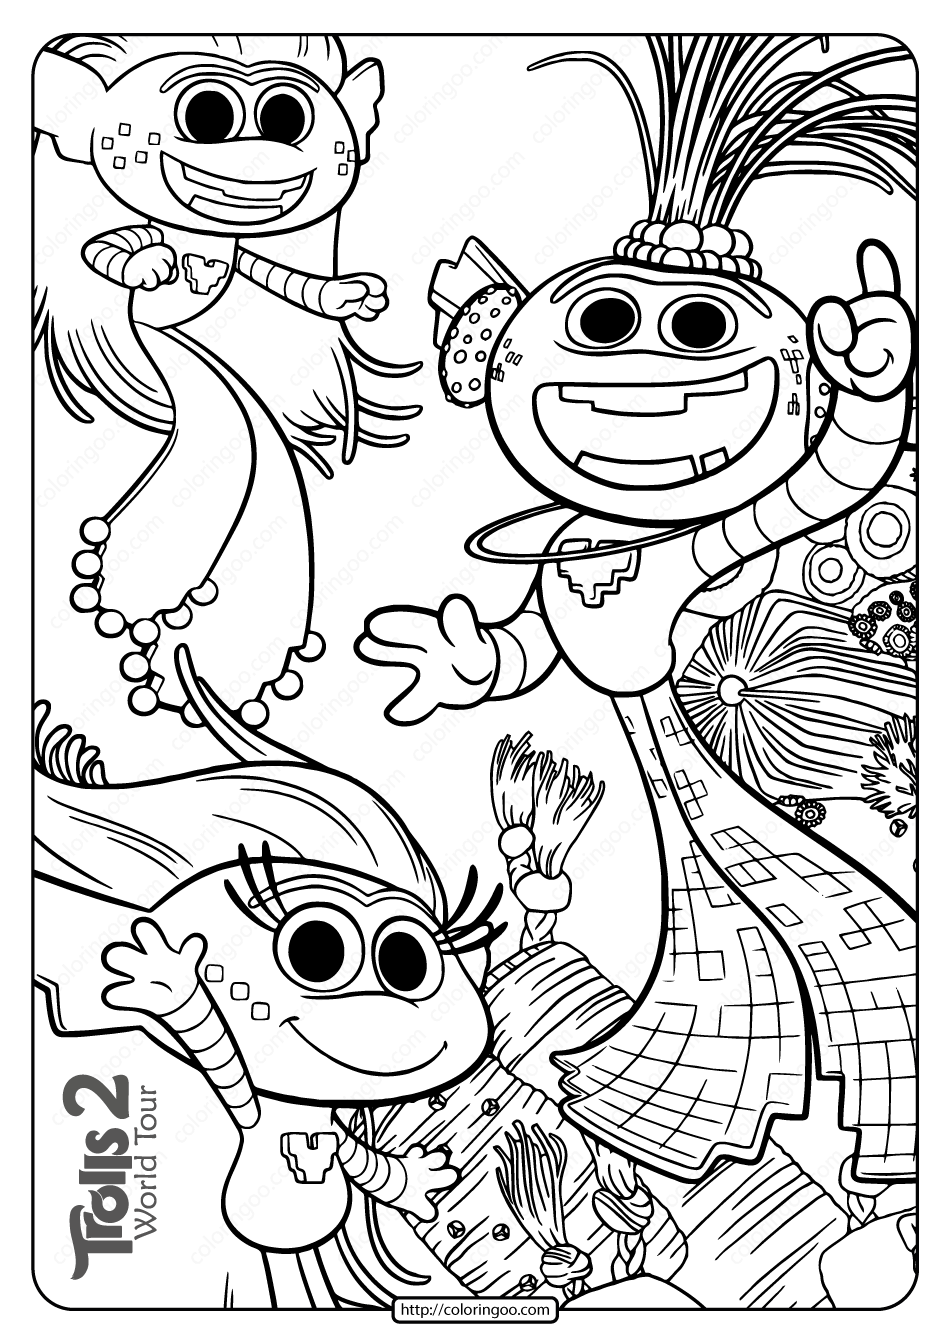 coloring sheet trolls troll doll coloring page at getdrawings free download sheet coloring trolls